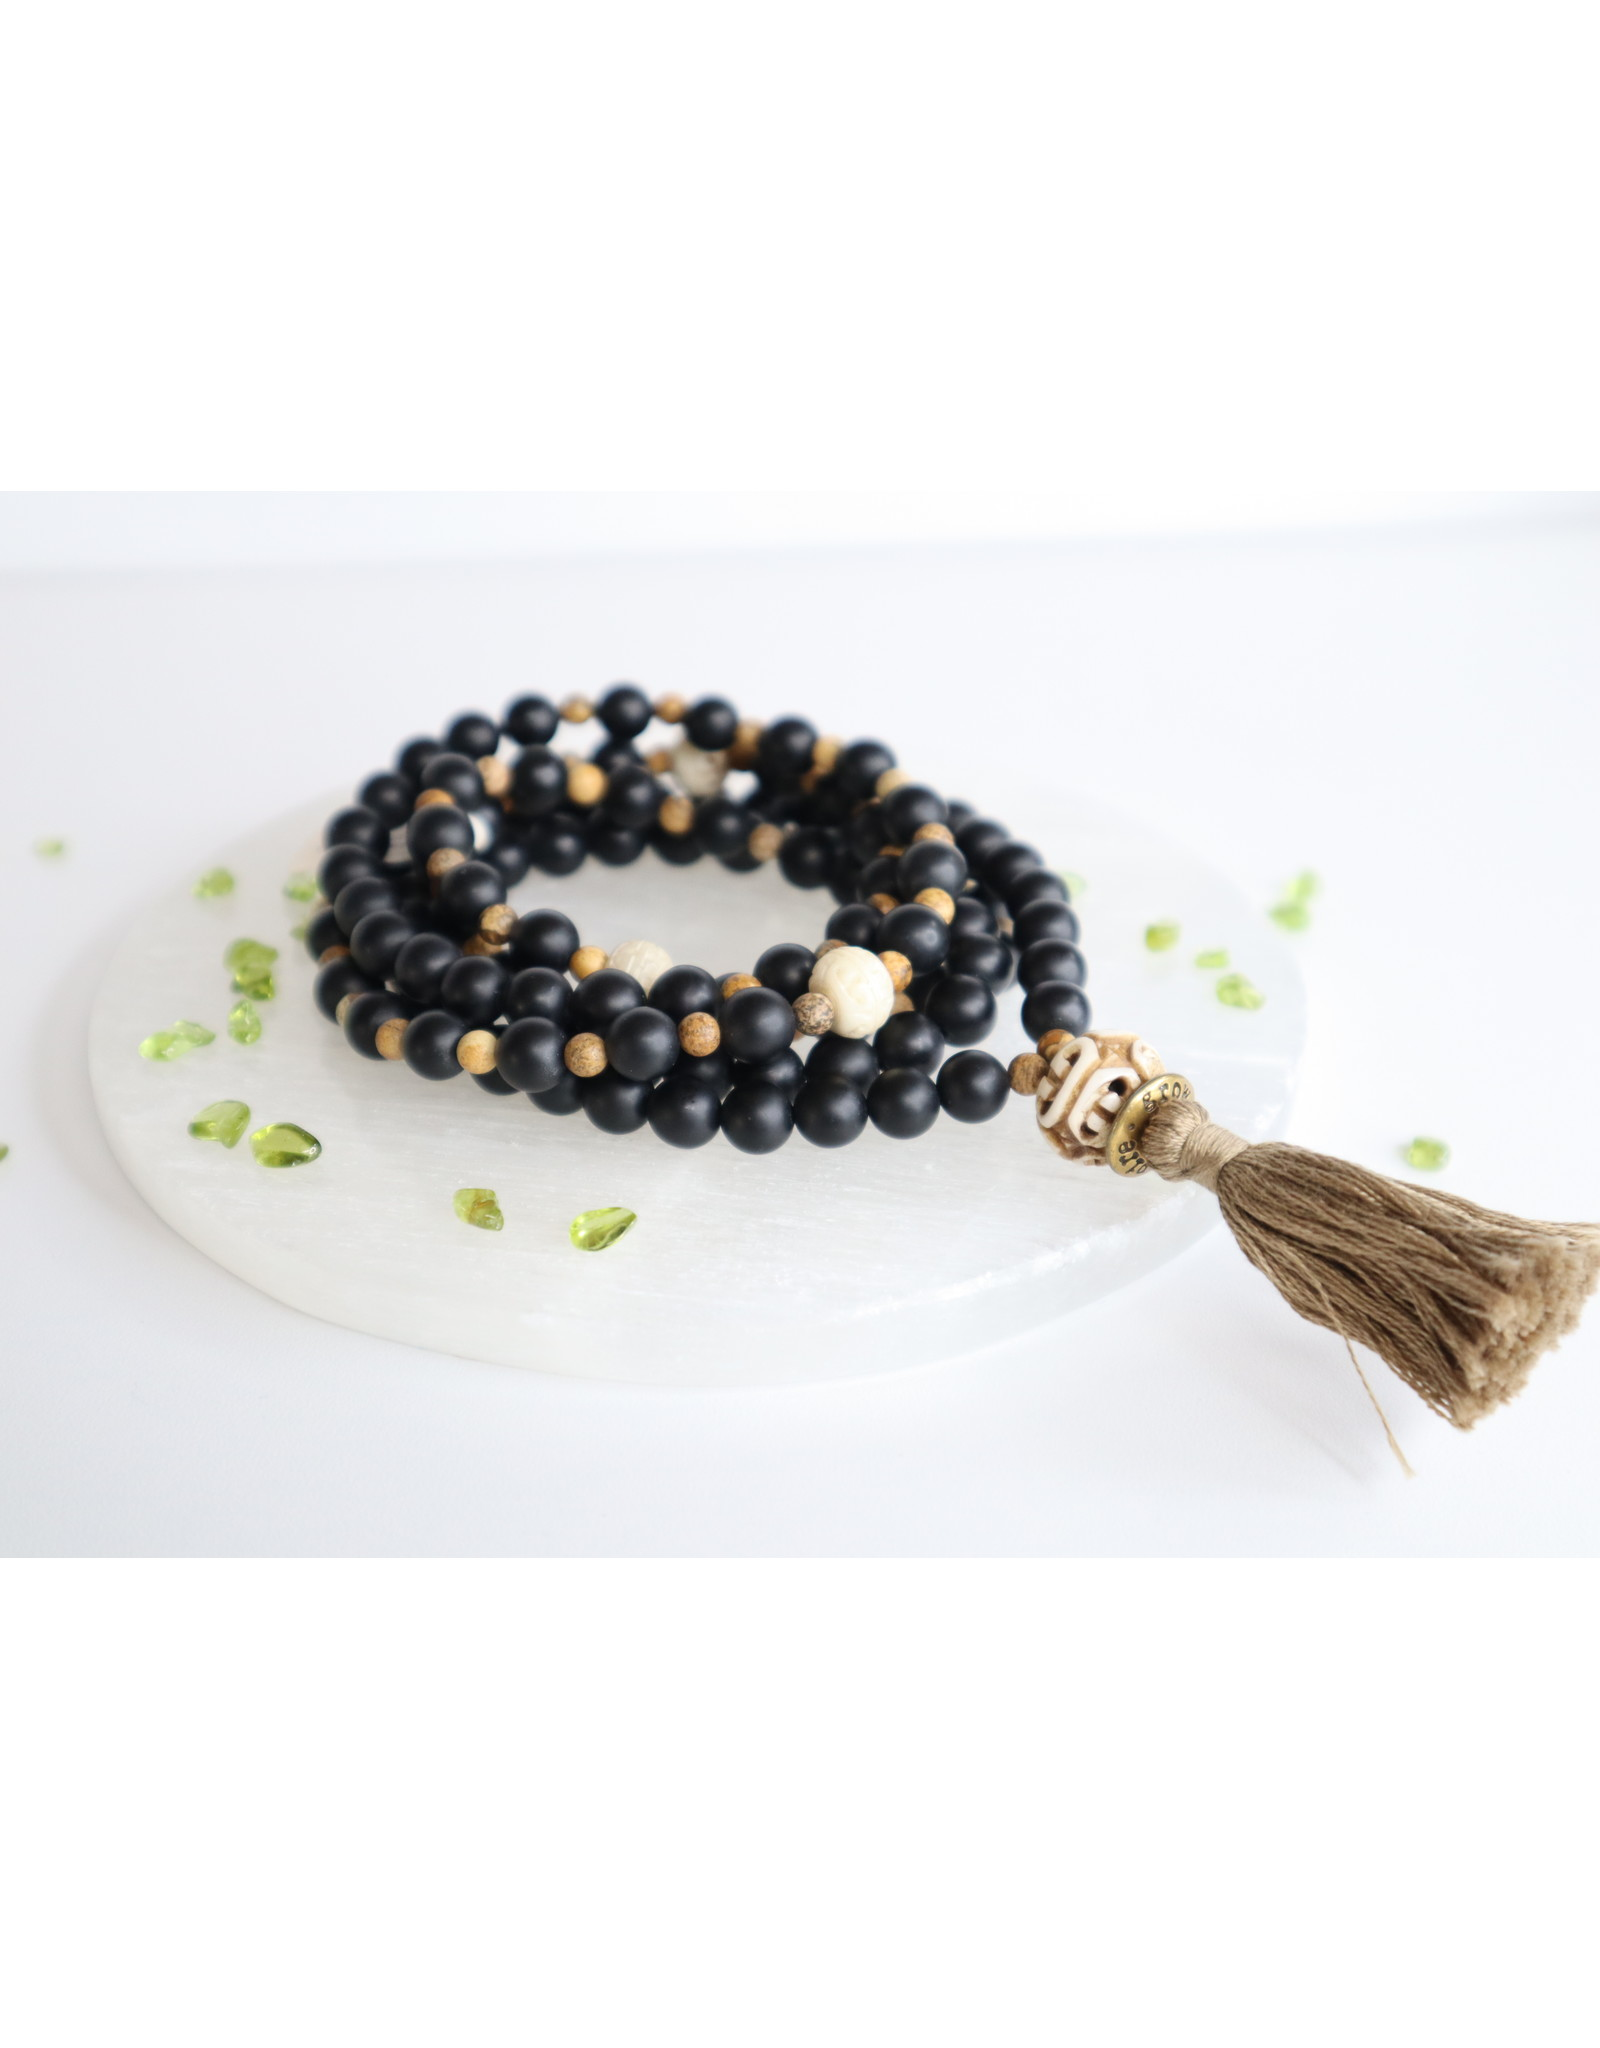 Black Onyx and Carved Bone Mala